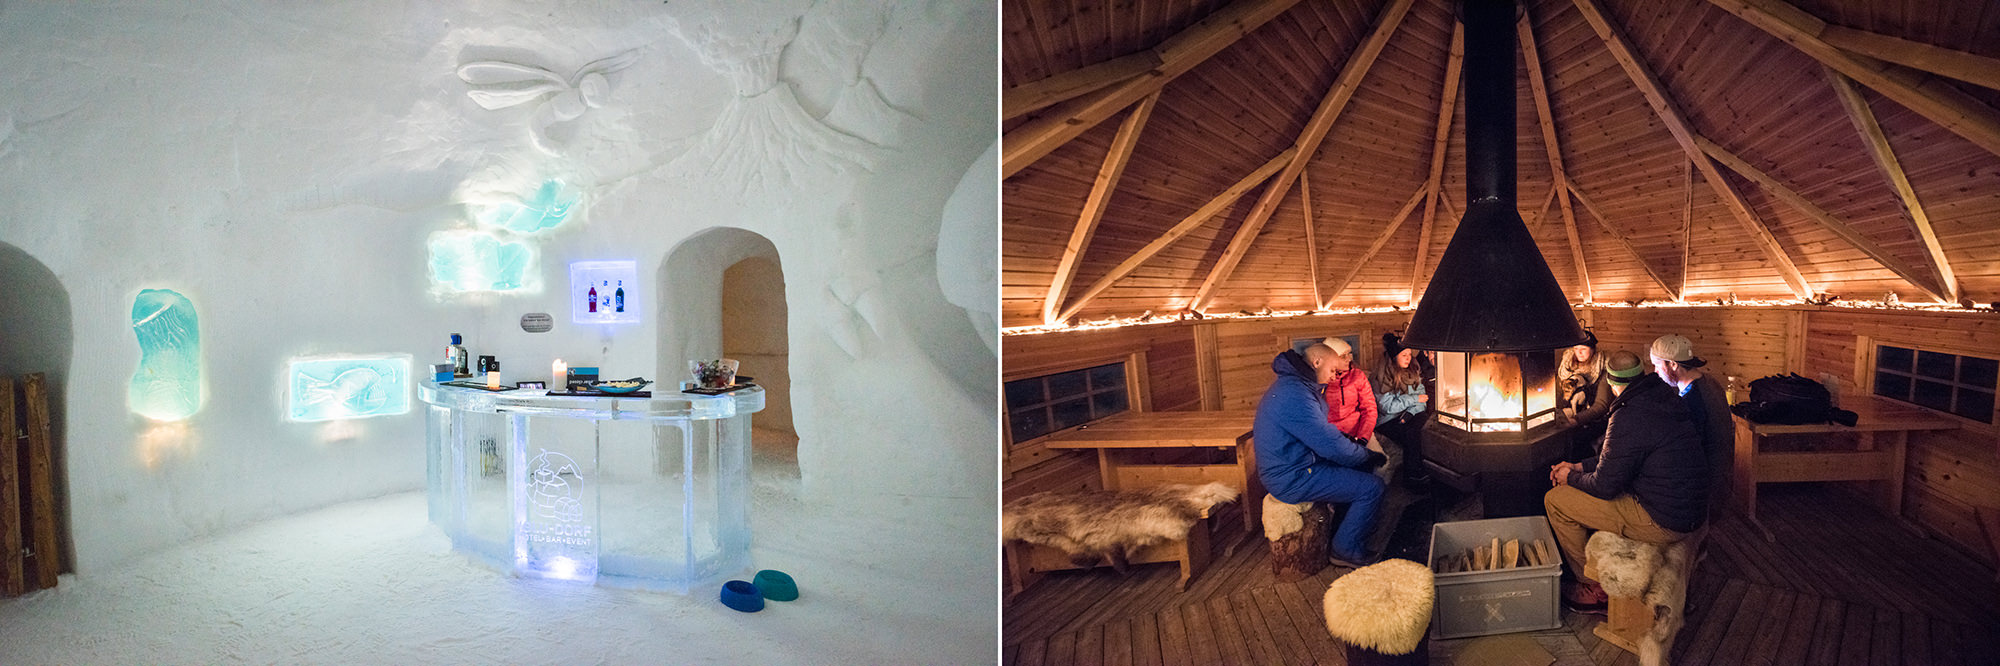 An ice hotel and a cosy wooden fire room